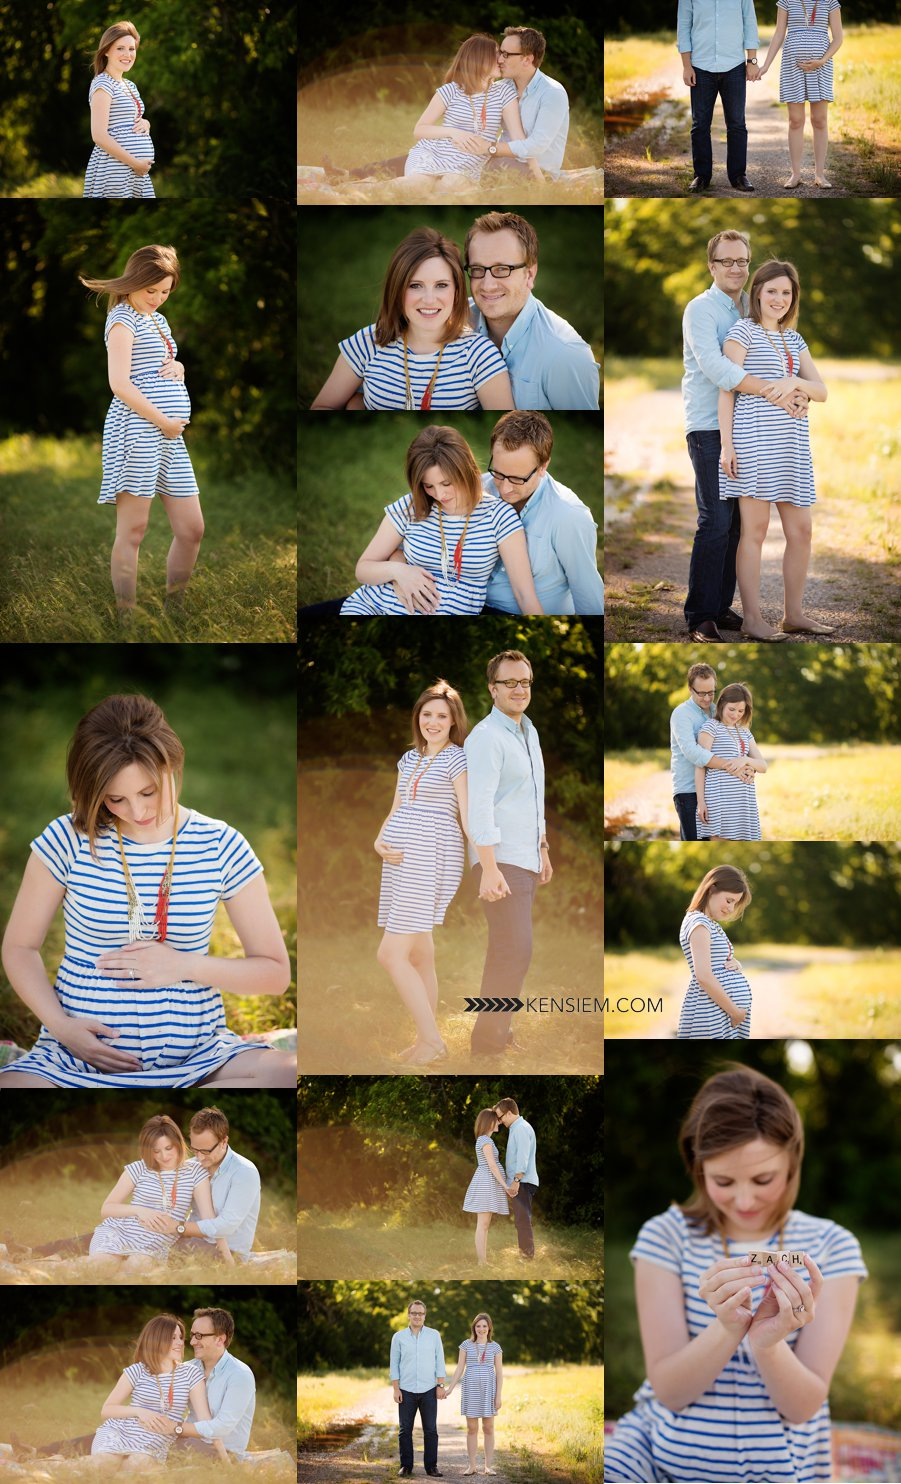 Beautiful maternity outdoor photos.